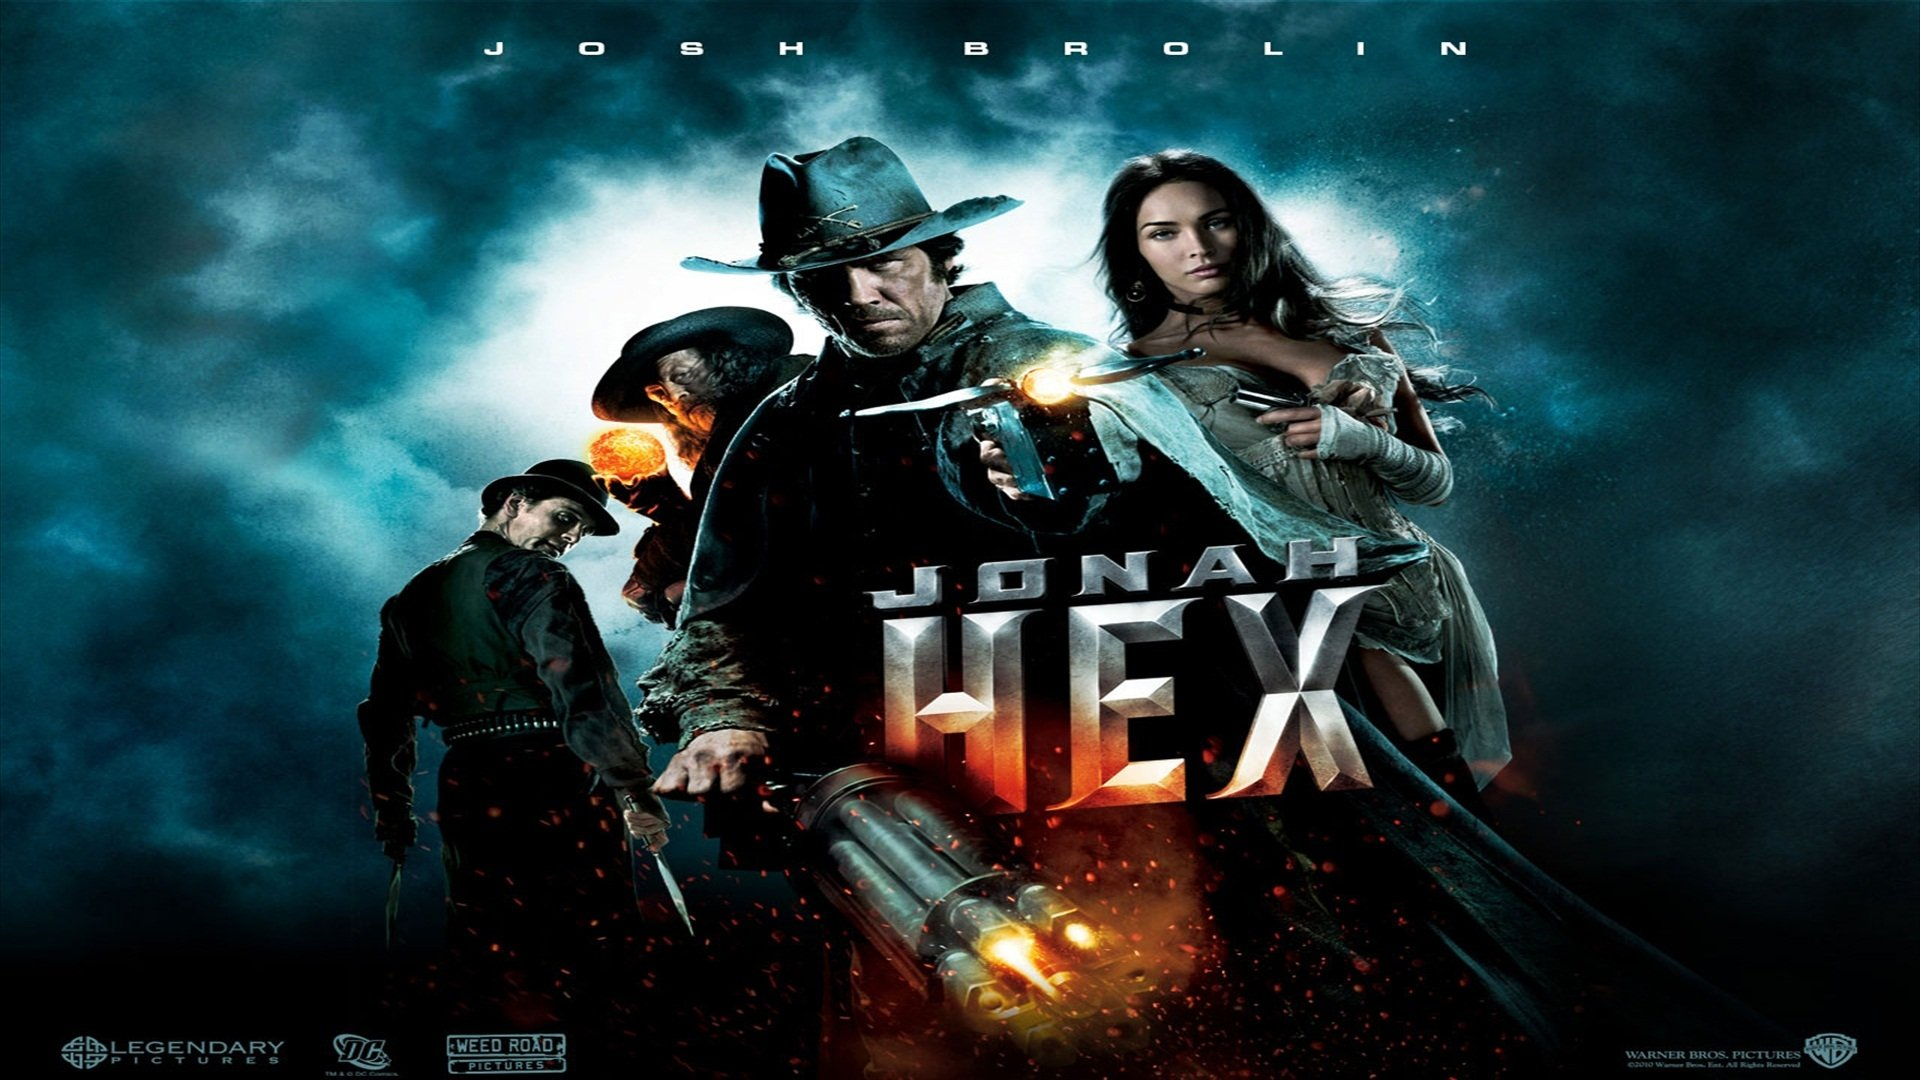 jonah hex full hd wallpaper and background image